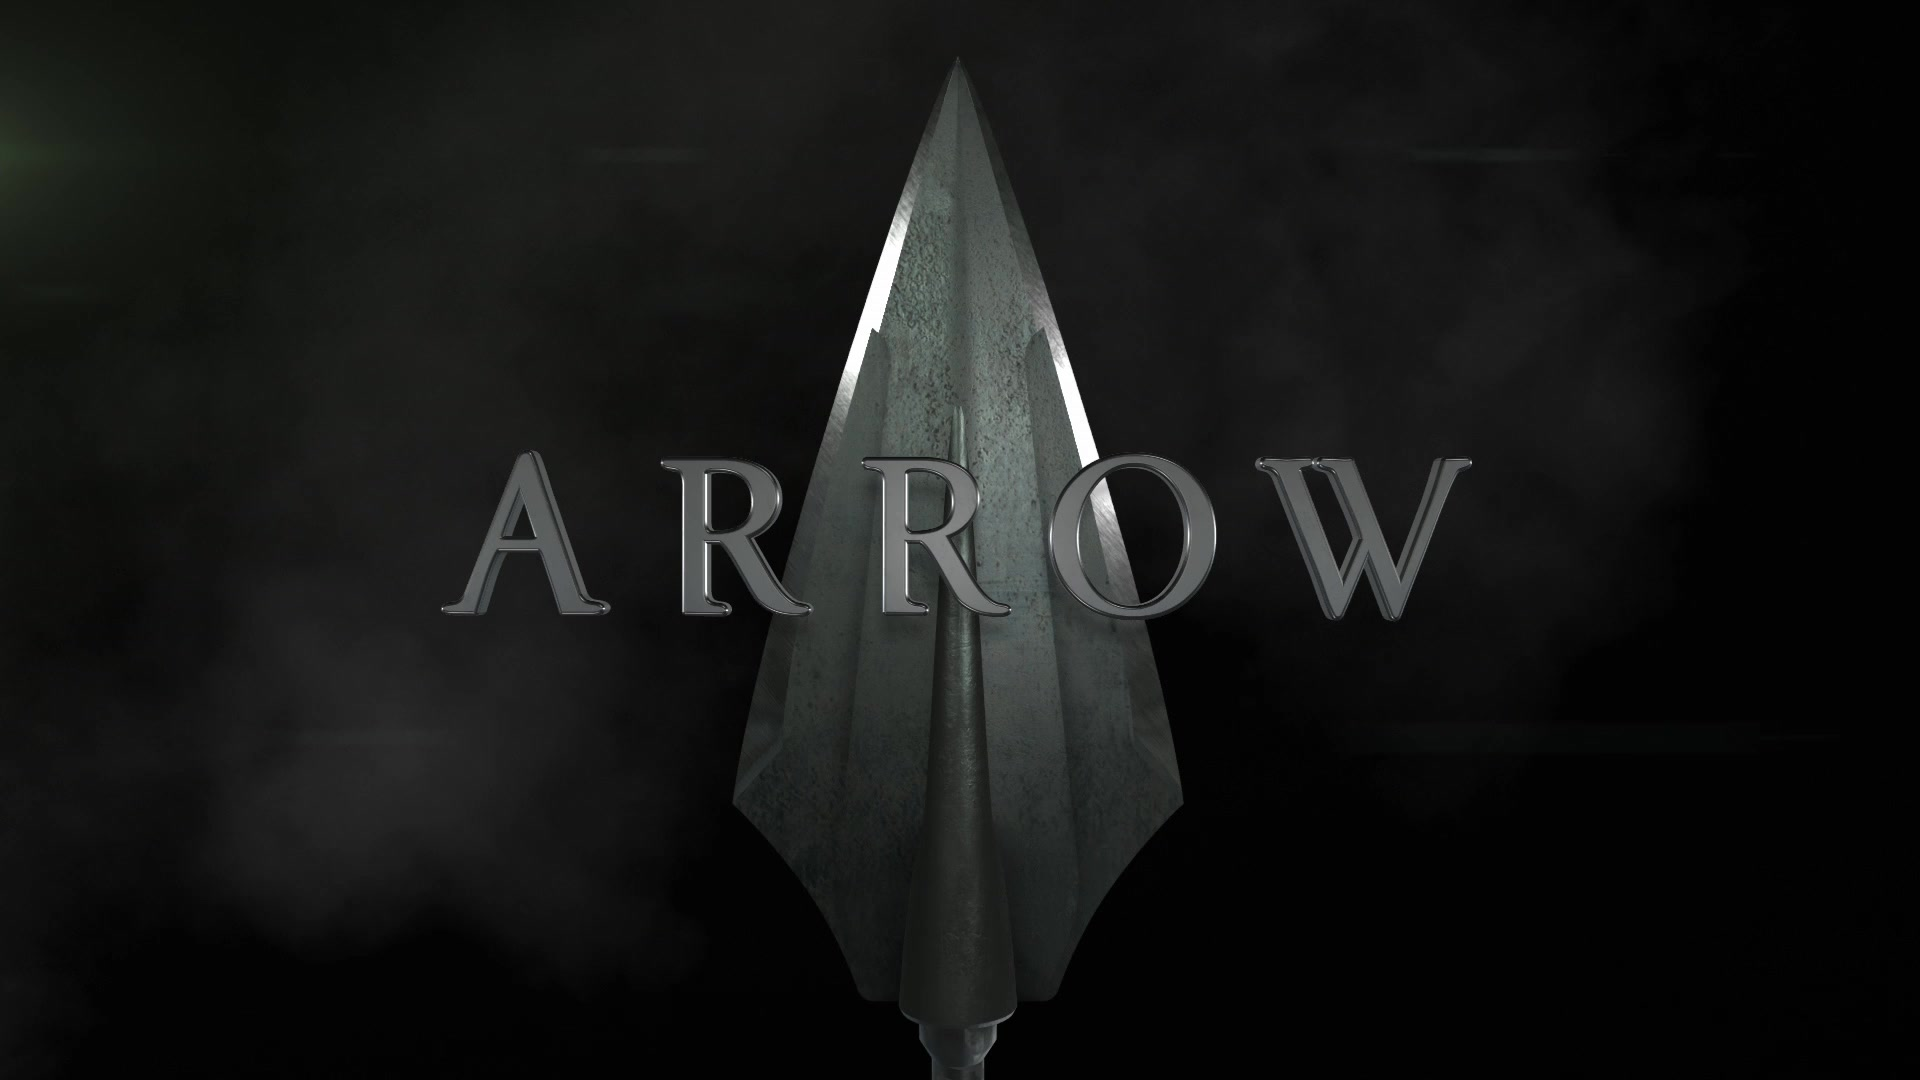 Arrow (TV Series) Episode: Brothers & Sisters